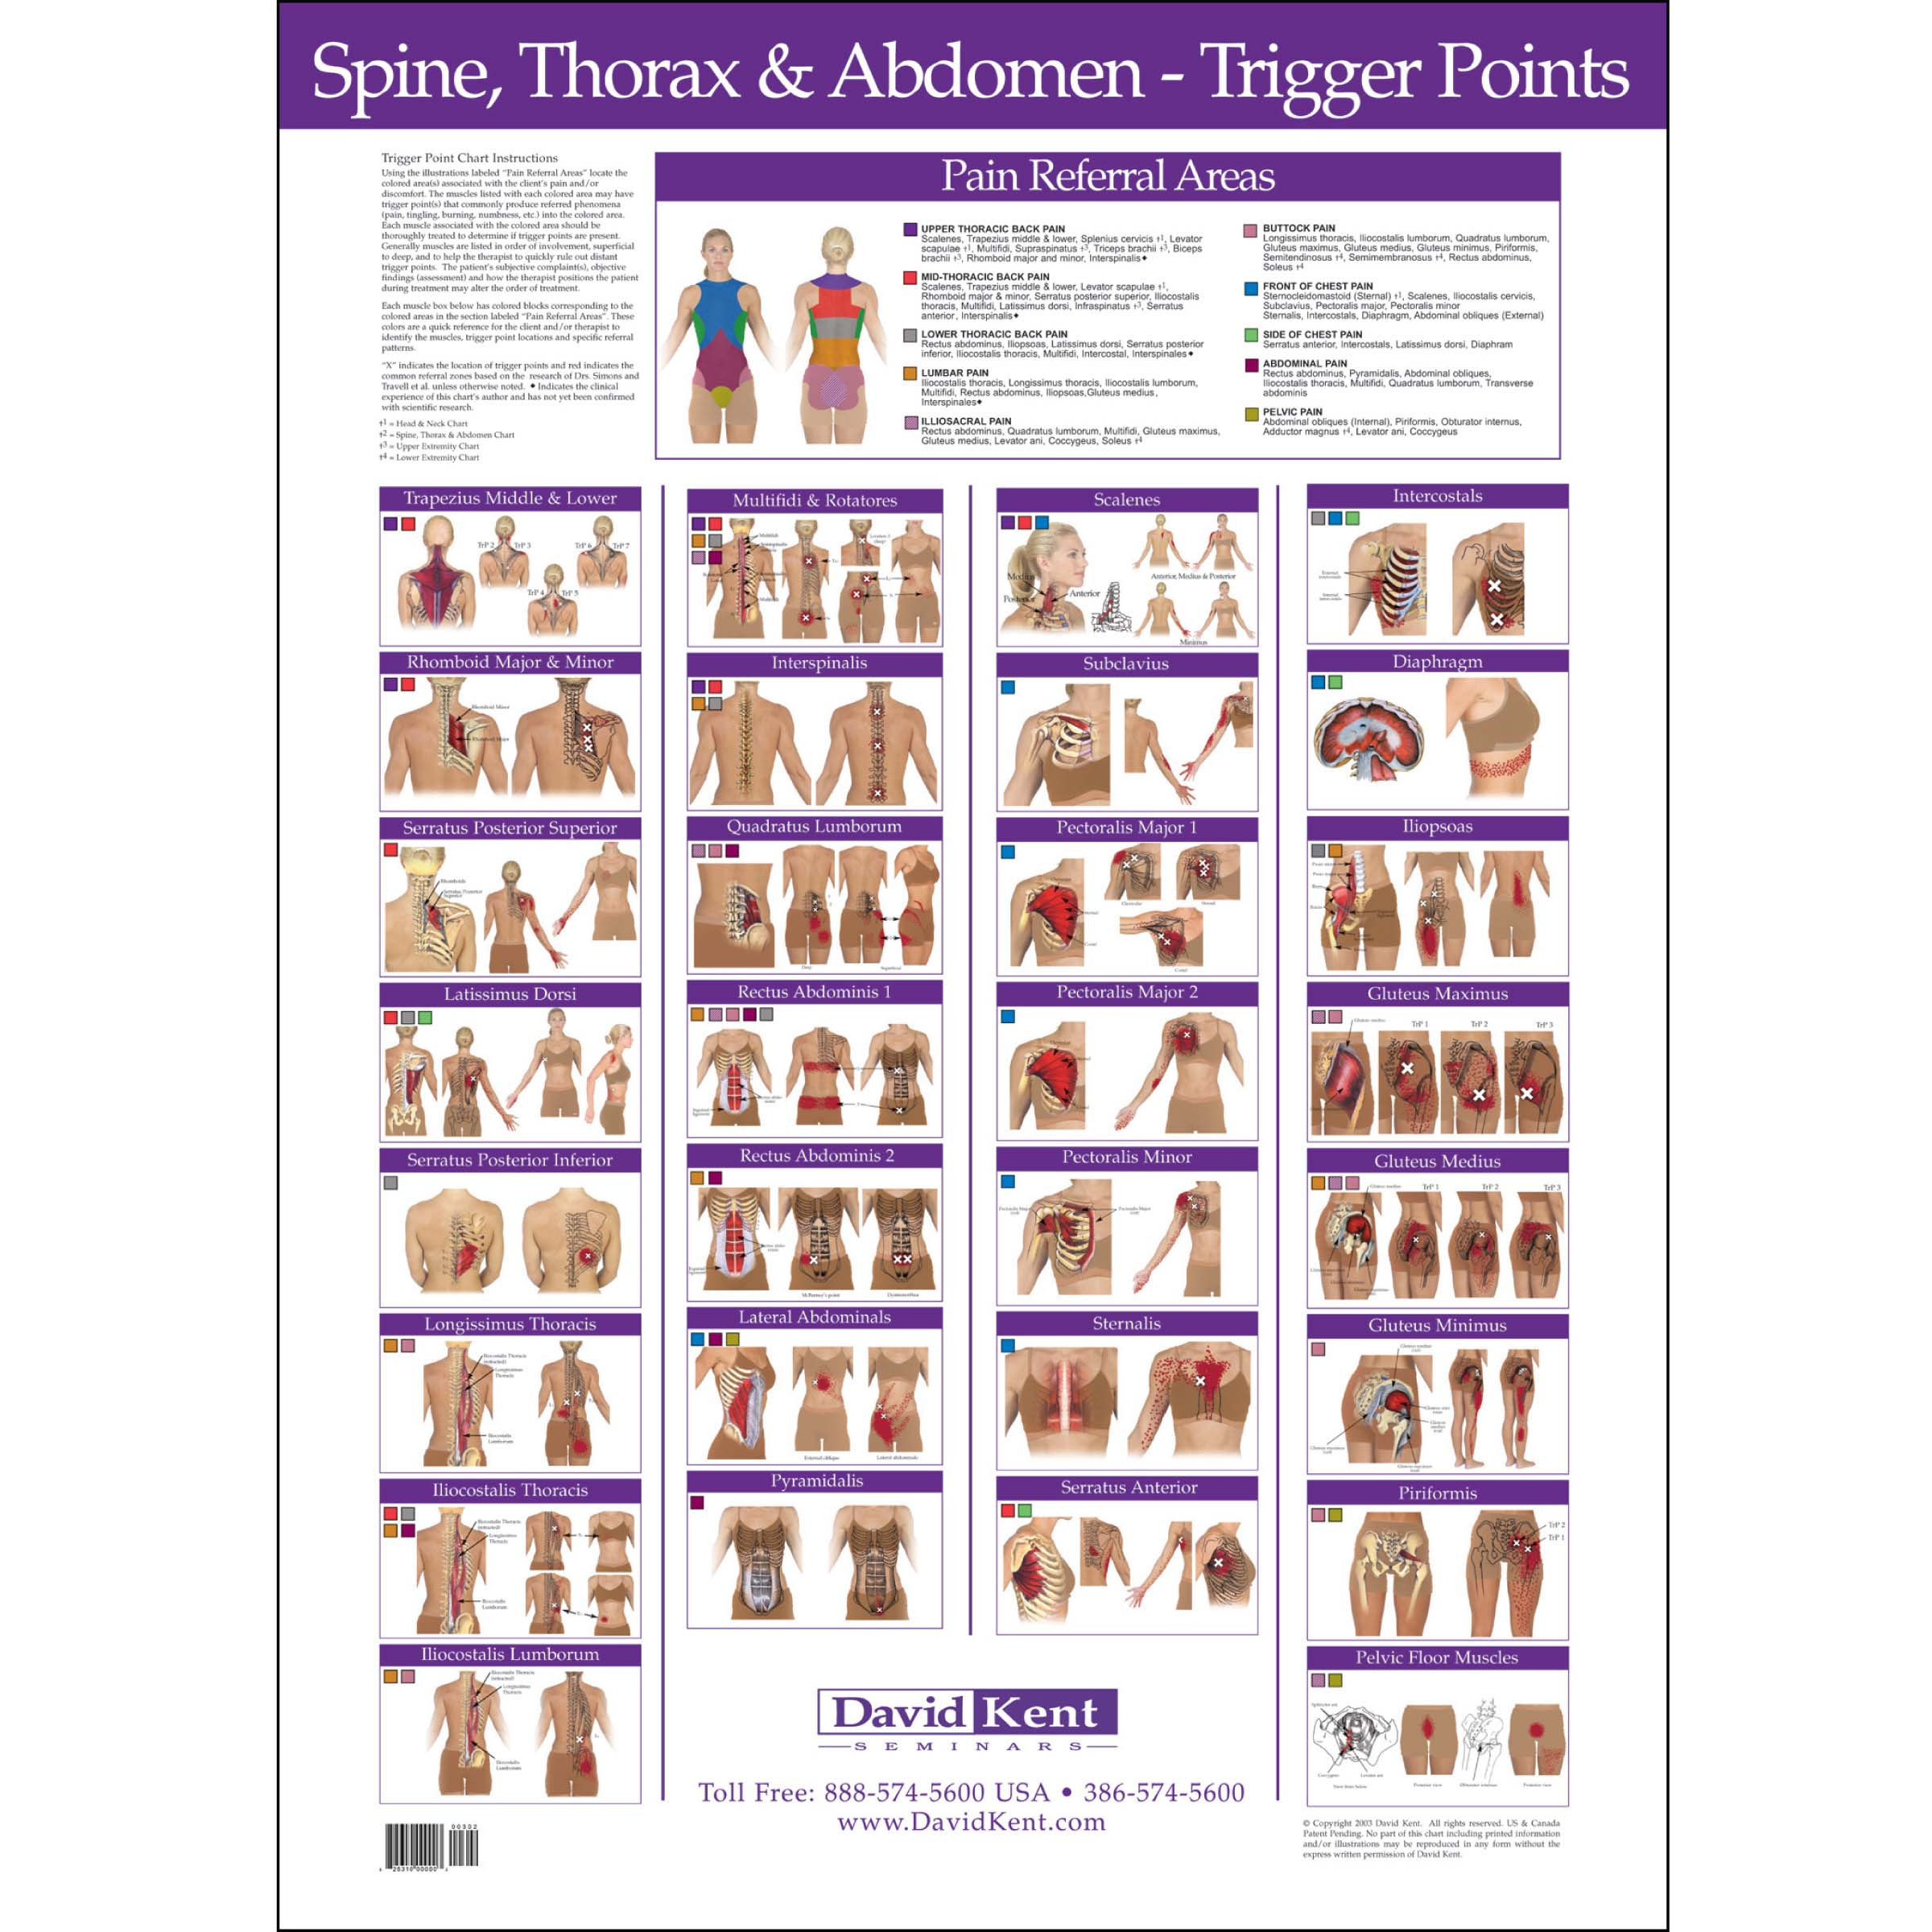 What is a trigger point chart?